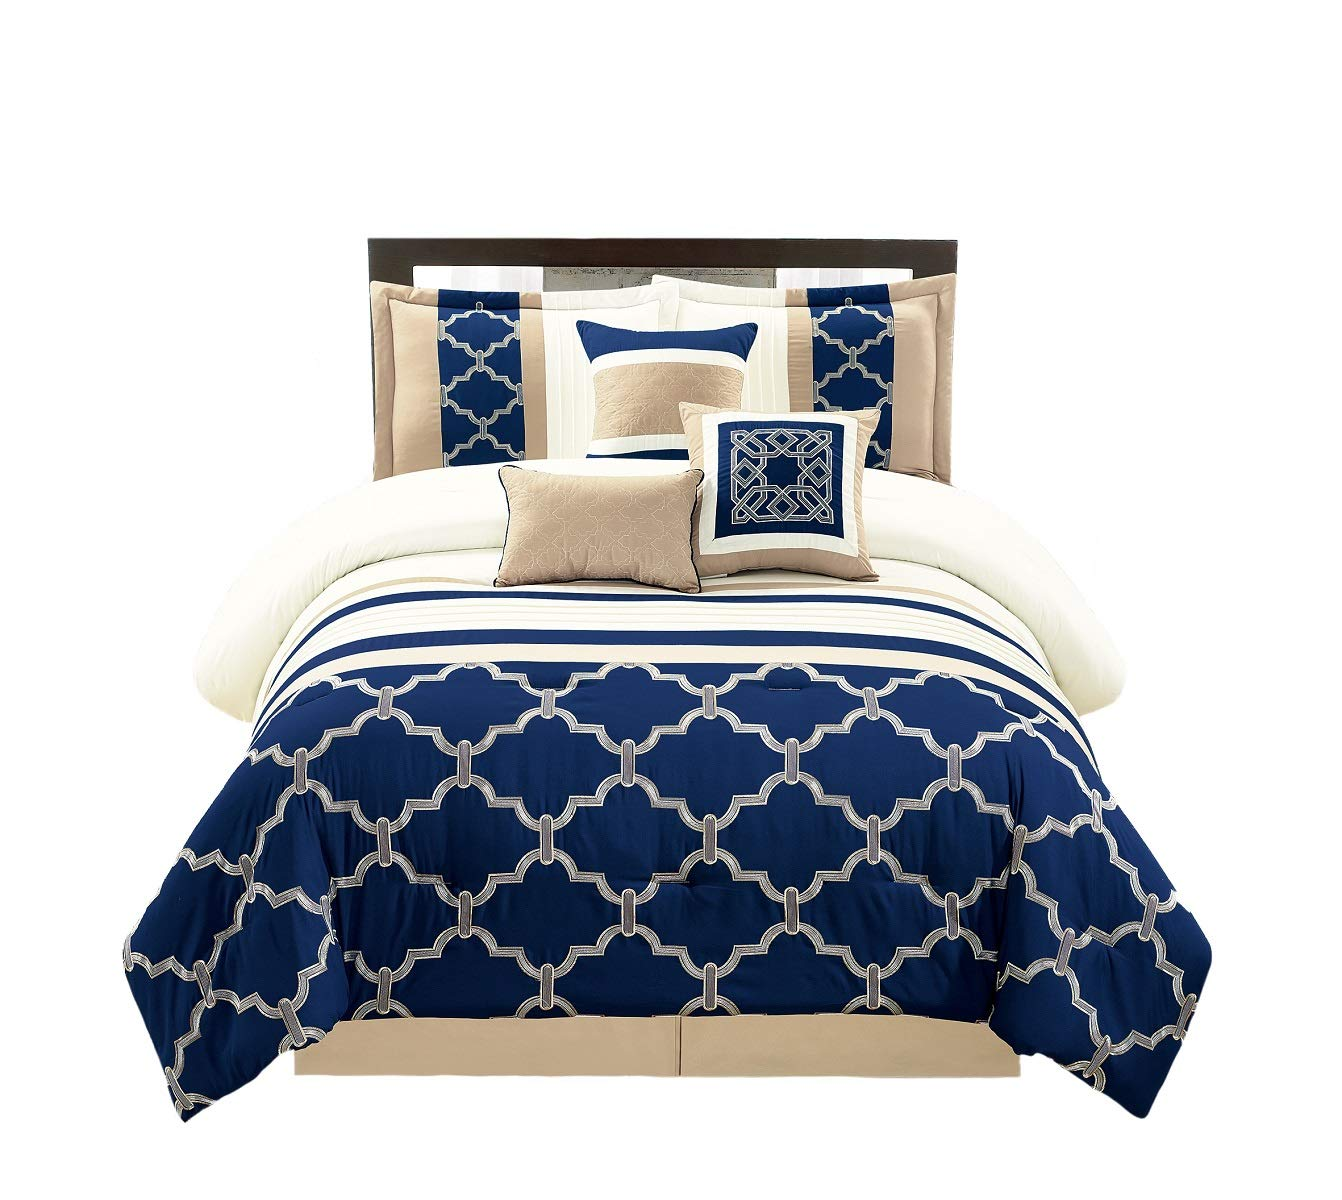 WPM 7 Pieces Complete Bedding Ensemble Navy Blue Taupe Ivory Beige Royal Print Luxury Embroidery Comforter Set Bed-in-a-Bag Queen Size Bedding-Daisy